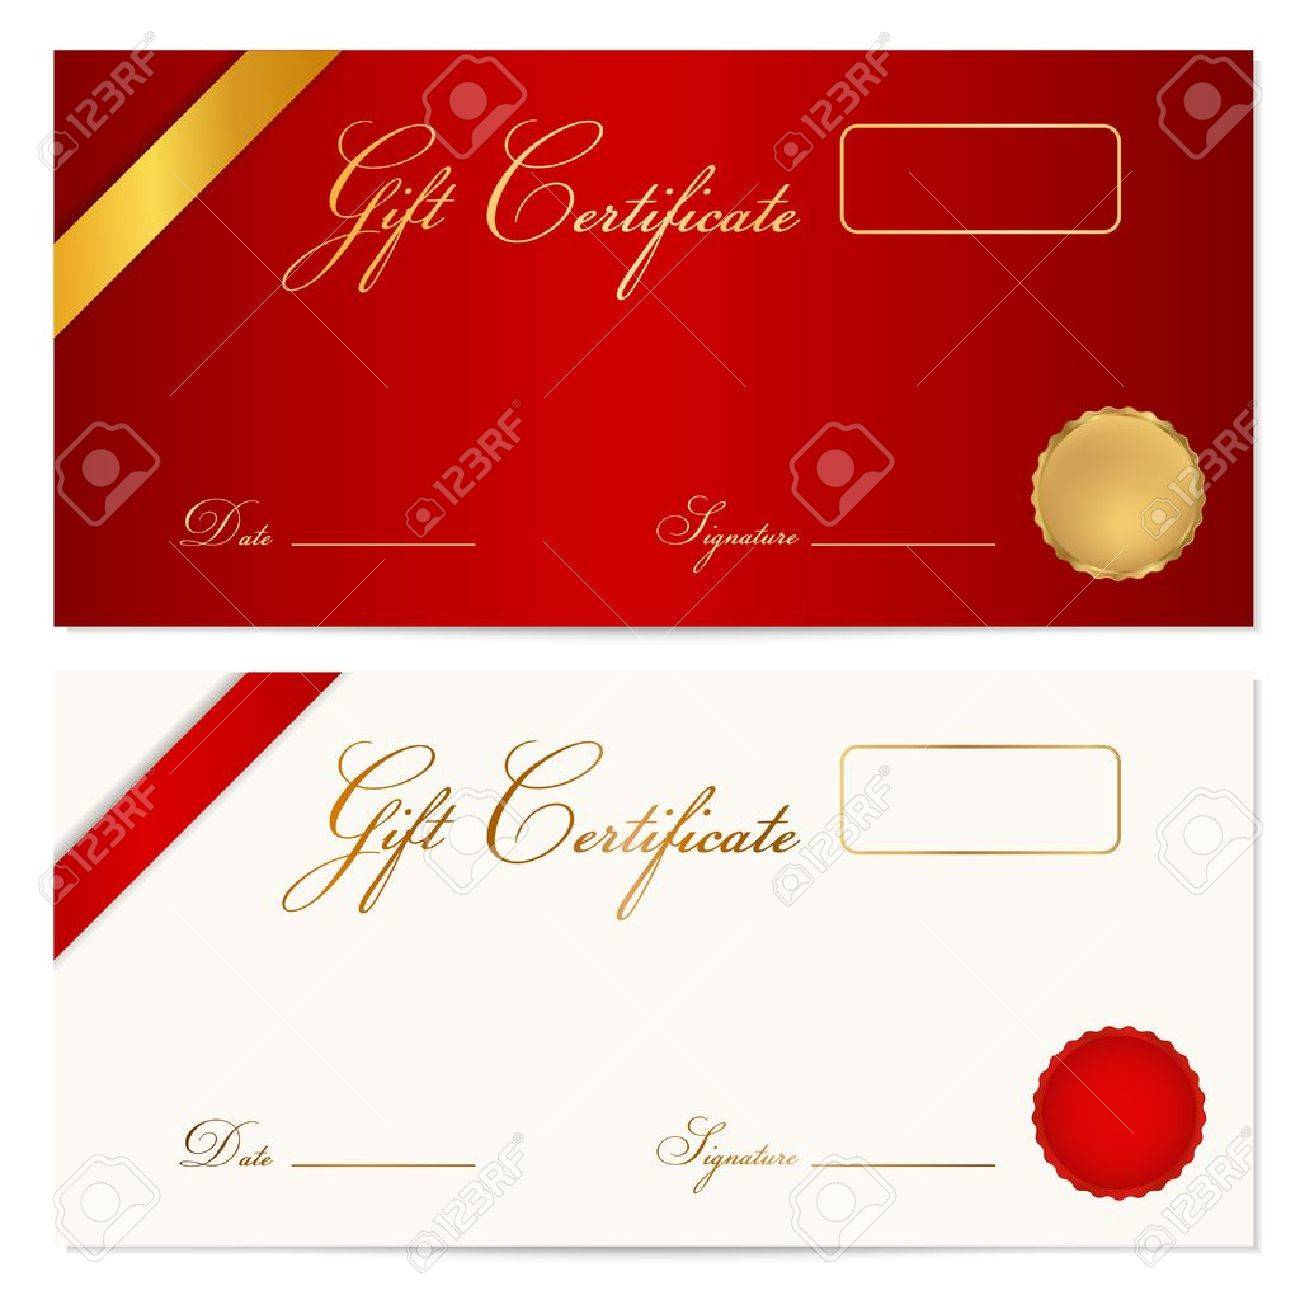 gift certificate images stock pictures royalty gift gift certificate voucher gift certificate coupon template ribbon seal wax background